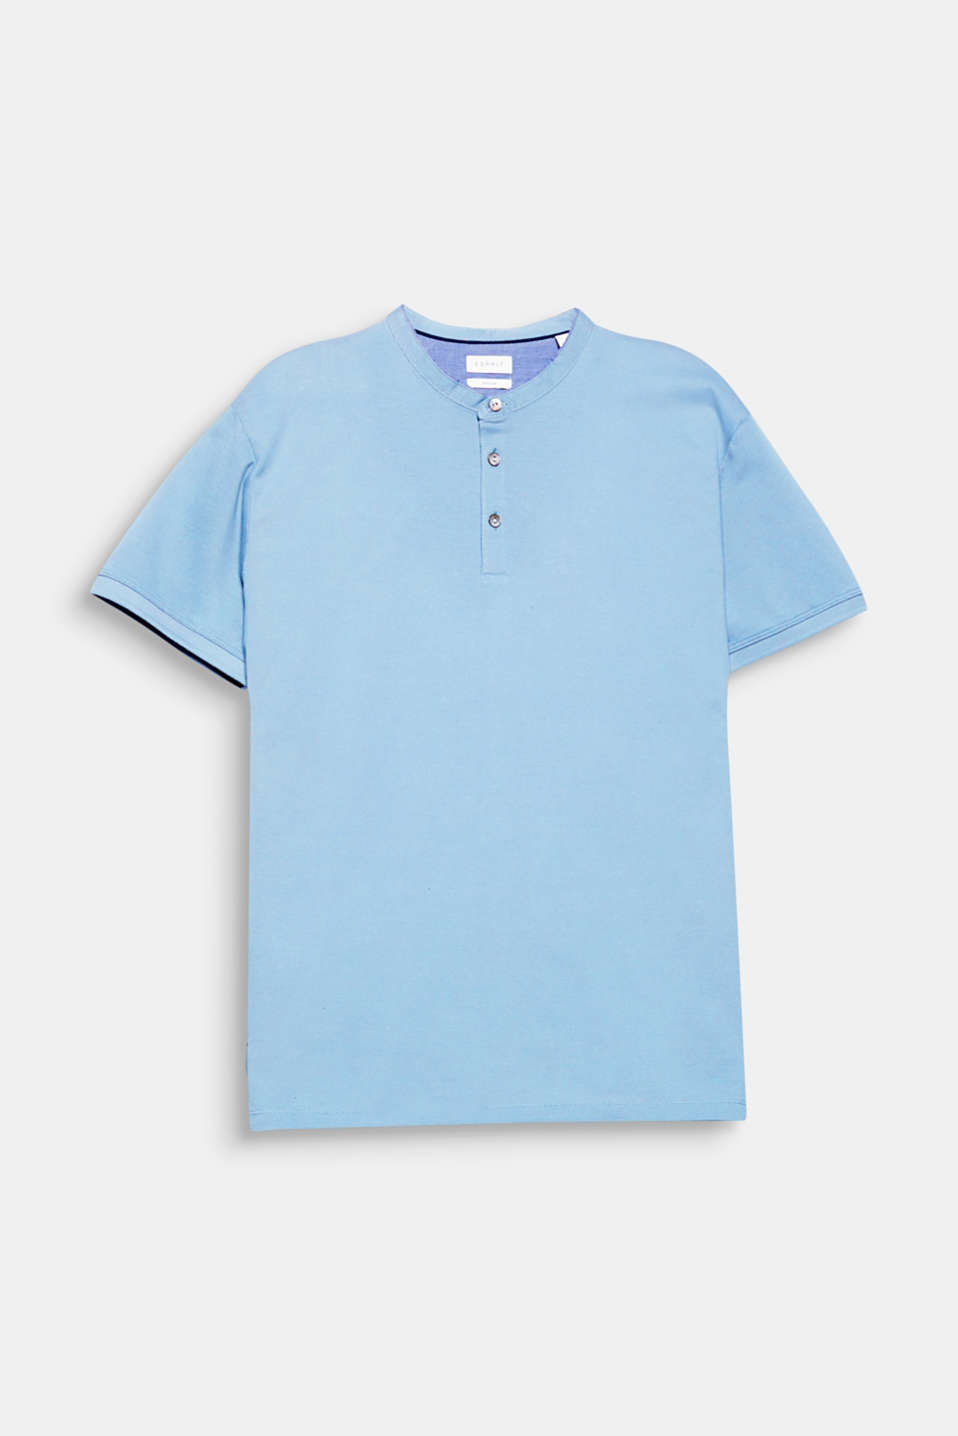 The fine chambray piping on the narrow stand-up collar gives this polo shirt a fine, detailed finish.